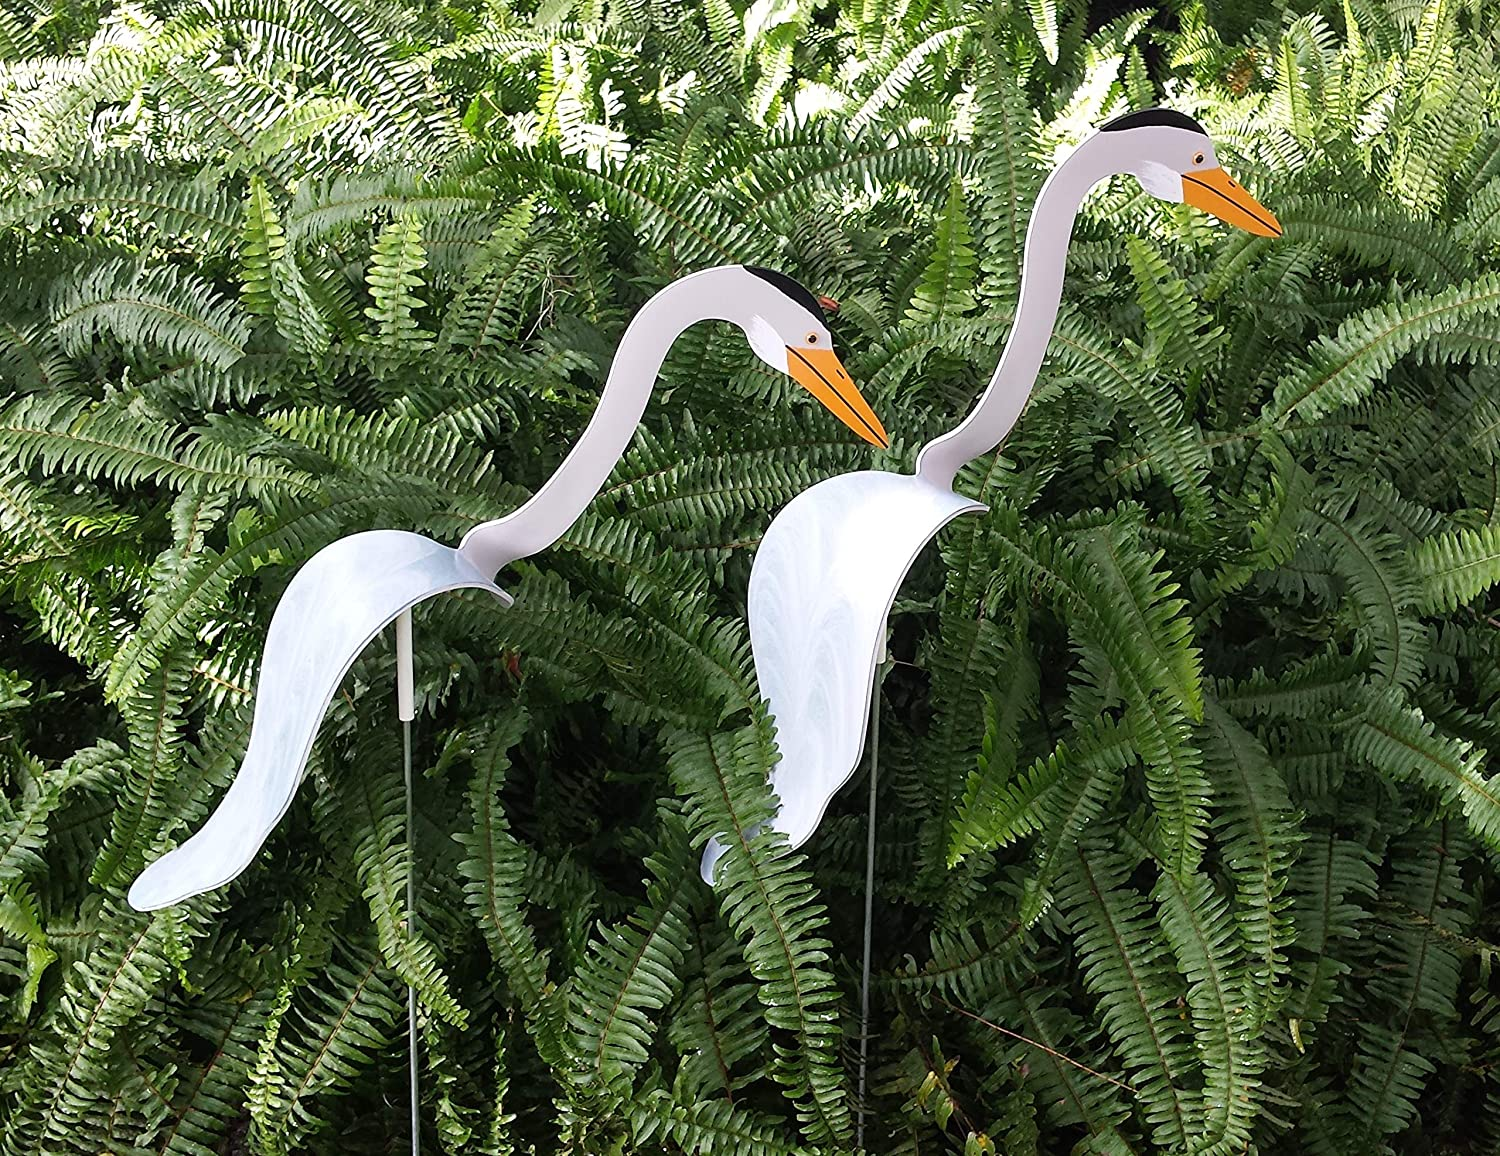 2 Large HERONS Bobbing Bird Dancing Balancing Kinetic Whirligig Wind Spinner Garden Art Decor PVC Birds Yard Flamingo Swirling Birds